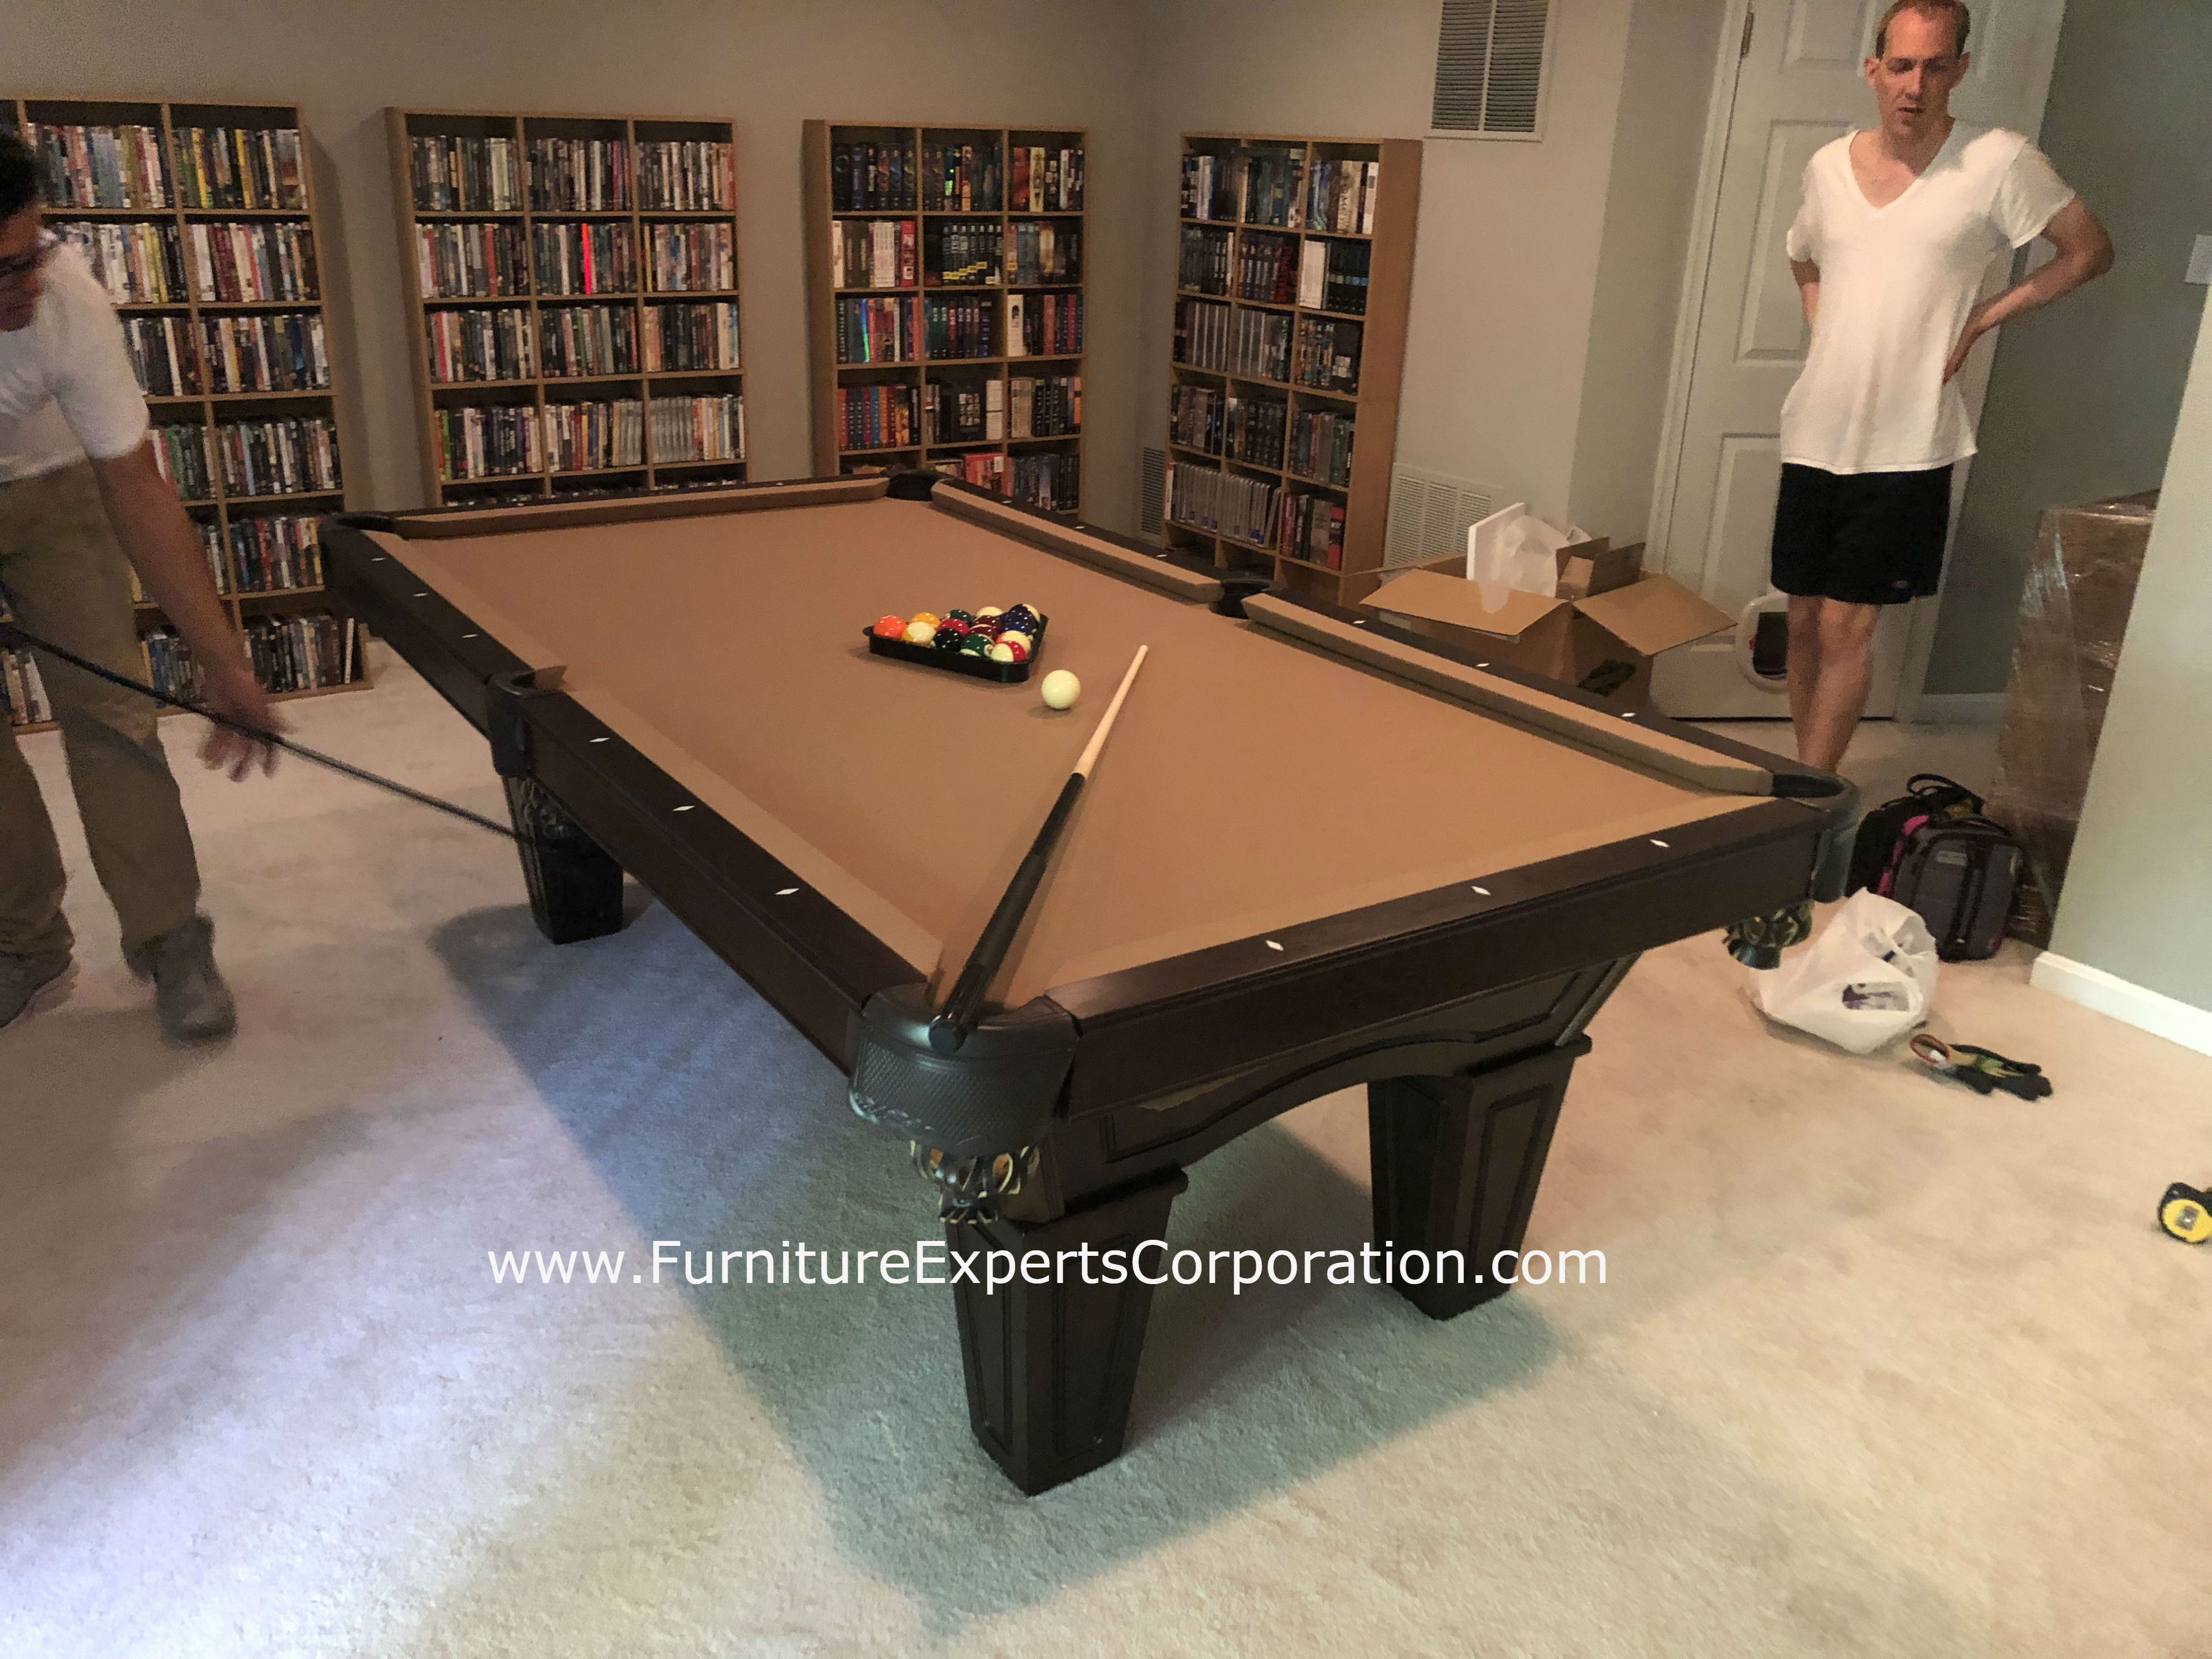 Furniture Experts Corporation TOP POOL TABLE INSTALLERS